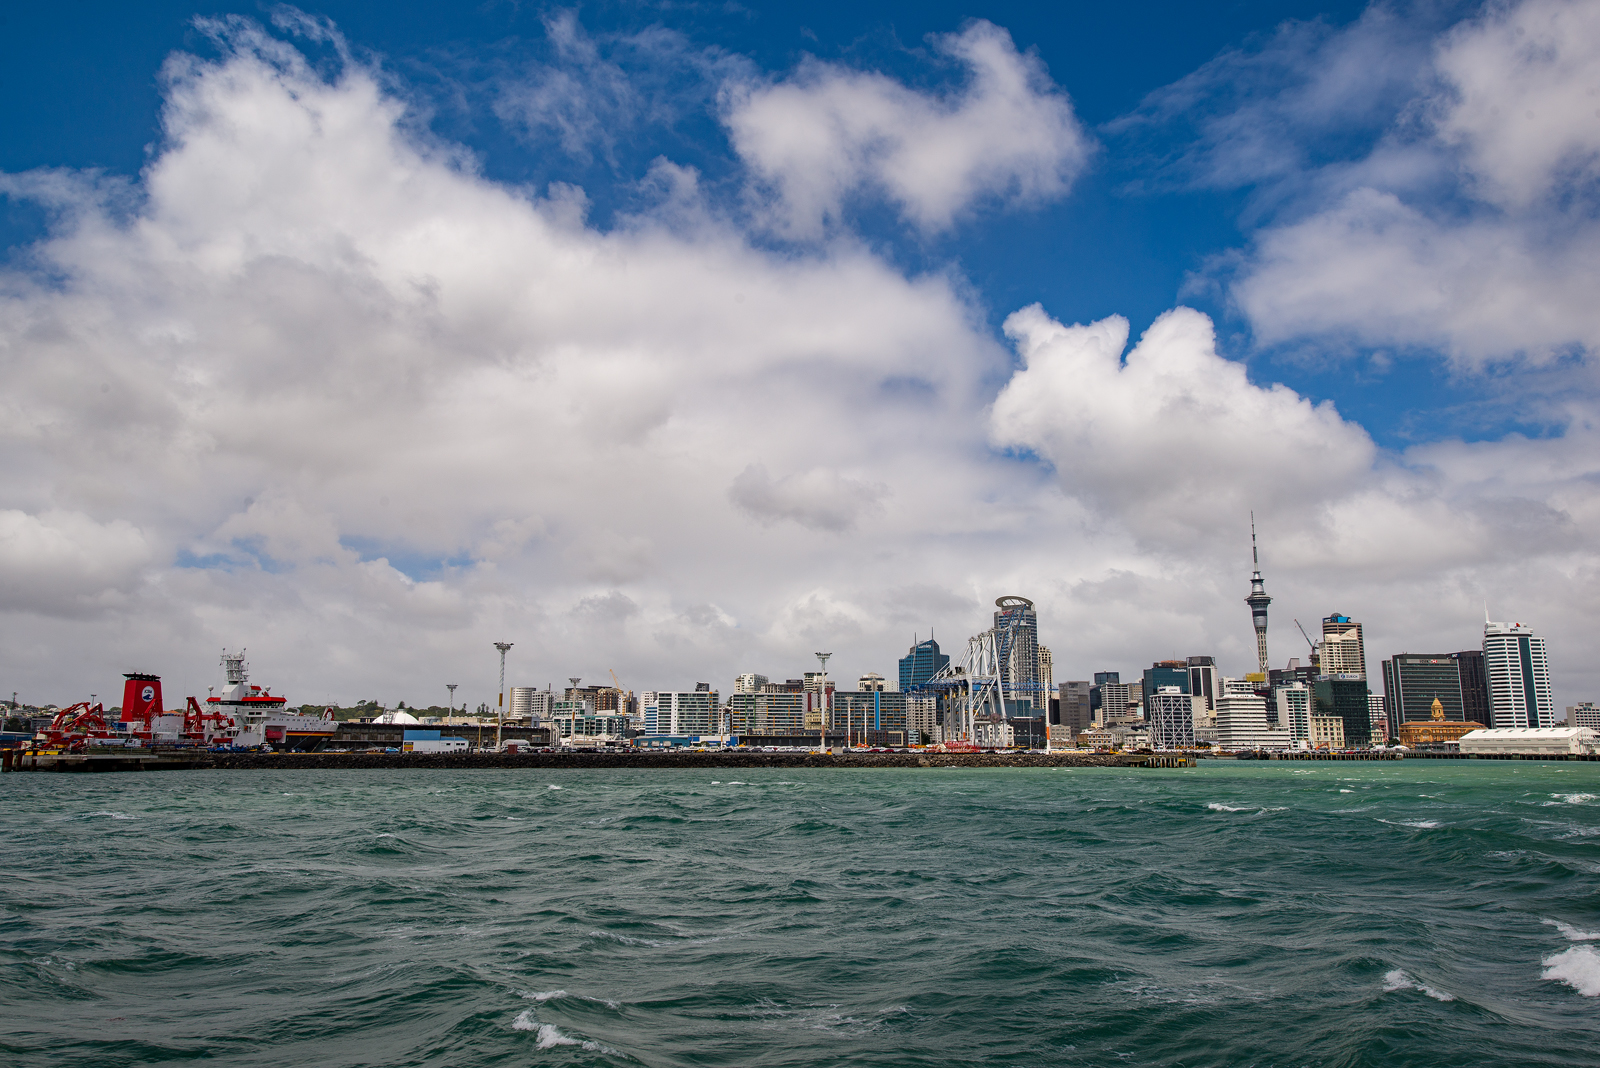 The skyline of Auckland with RV Sonne in the foreground as seen from the Rangitoto ferry.